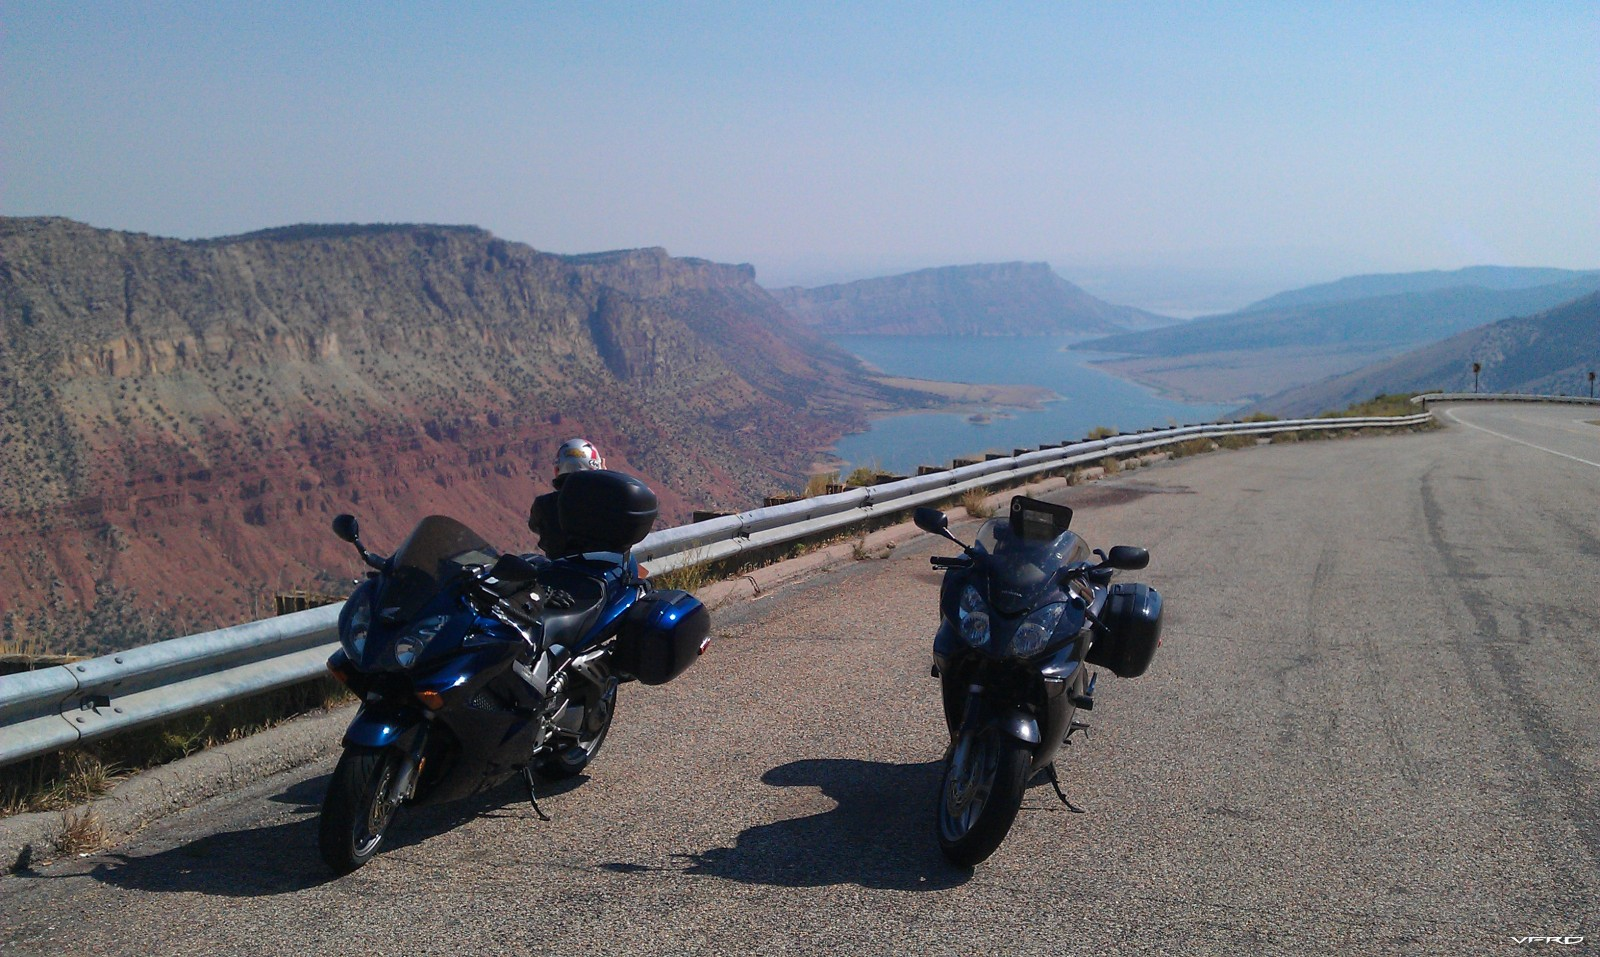 Flaming Gorge with CVVFR and didit bikes en route